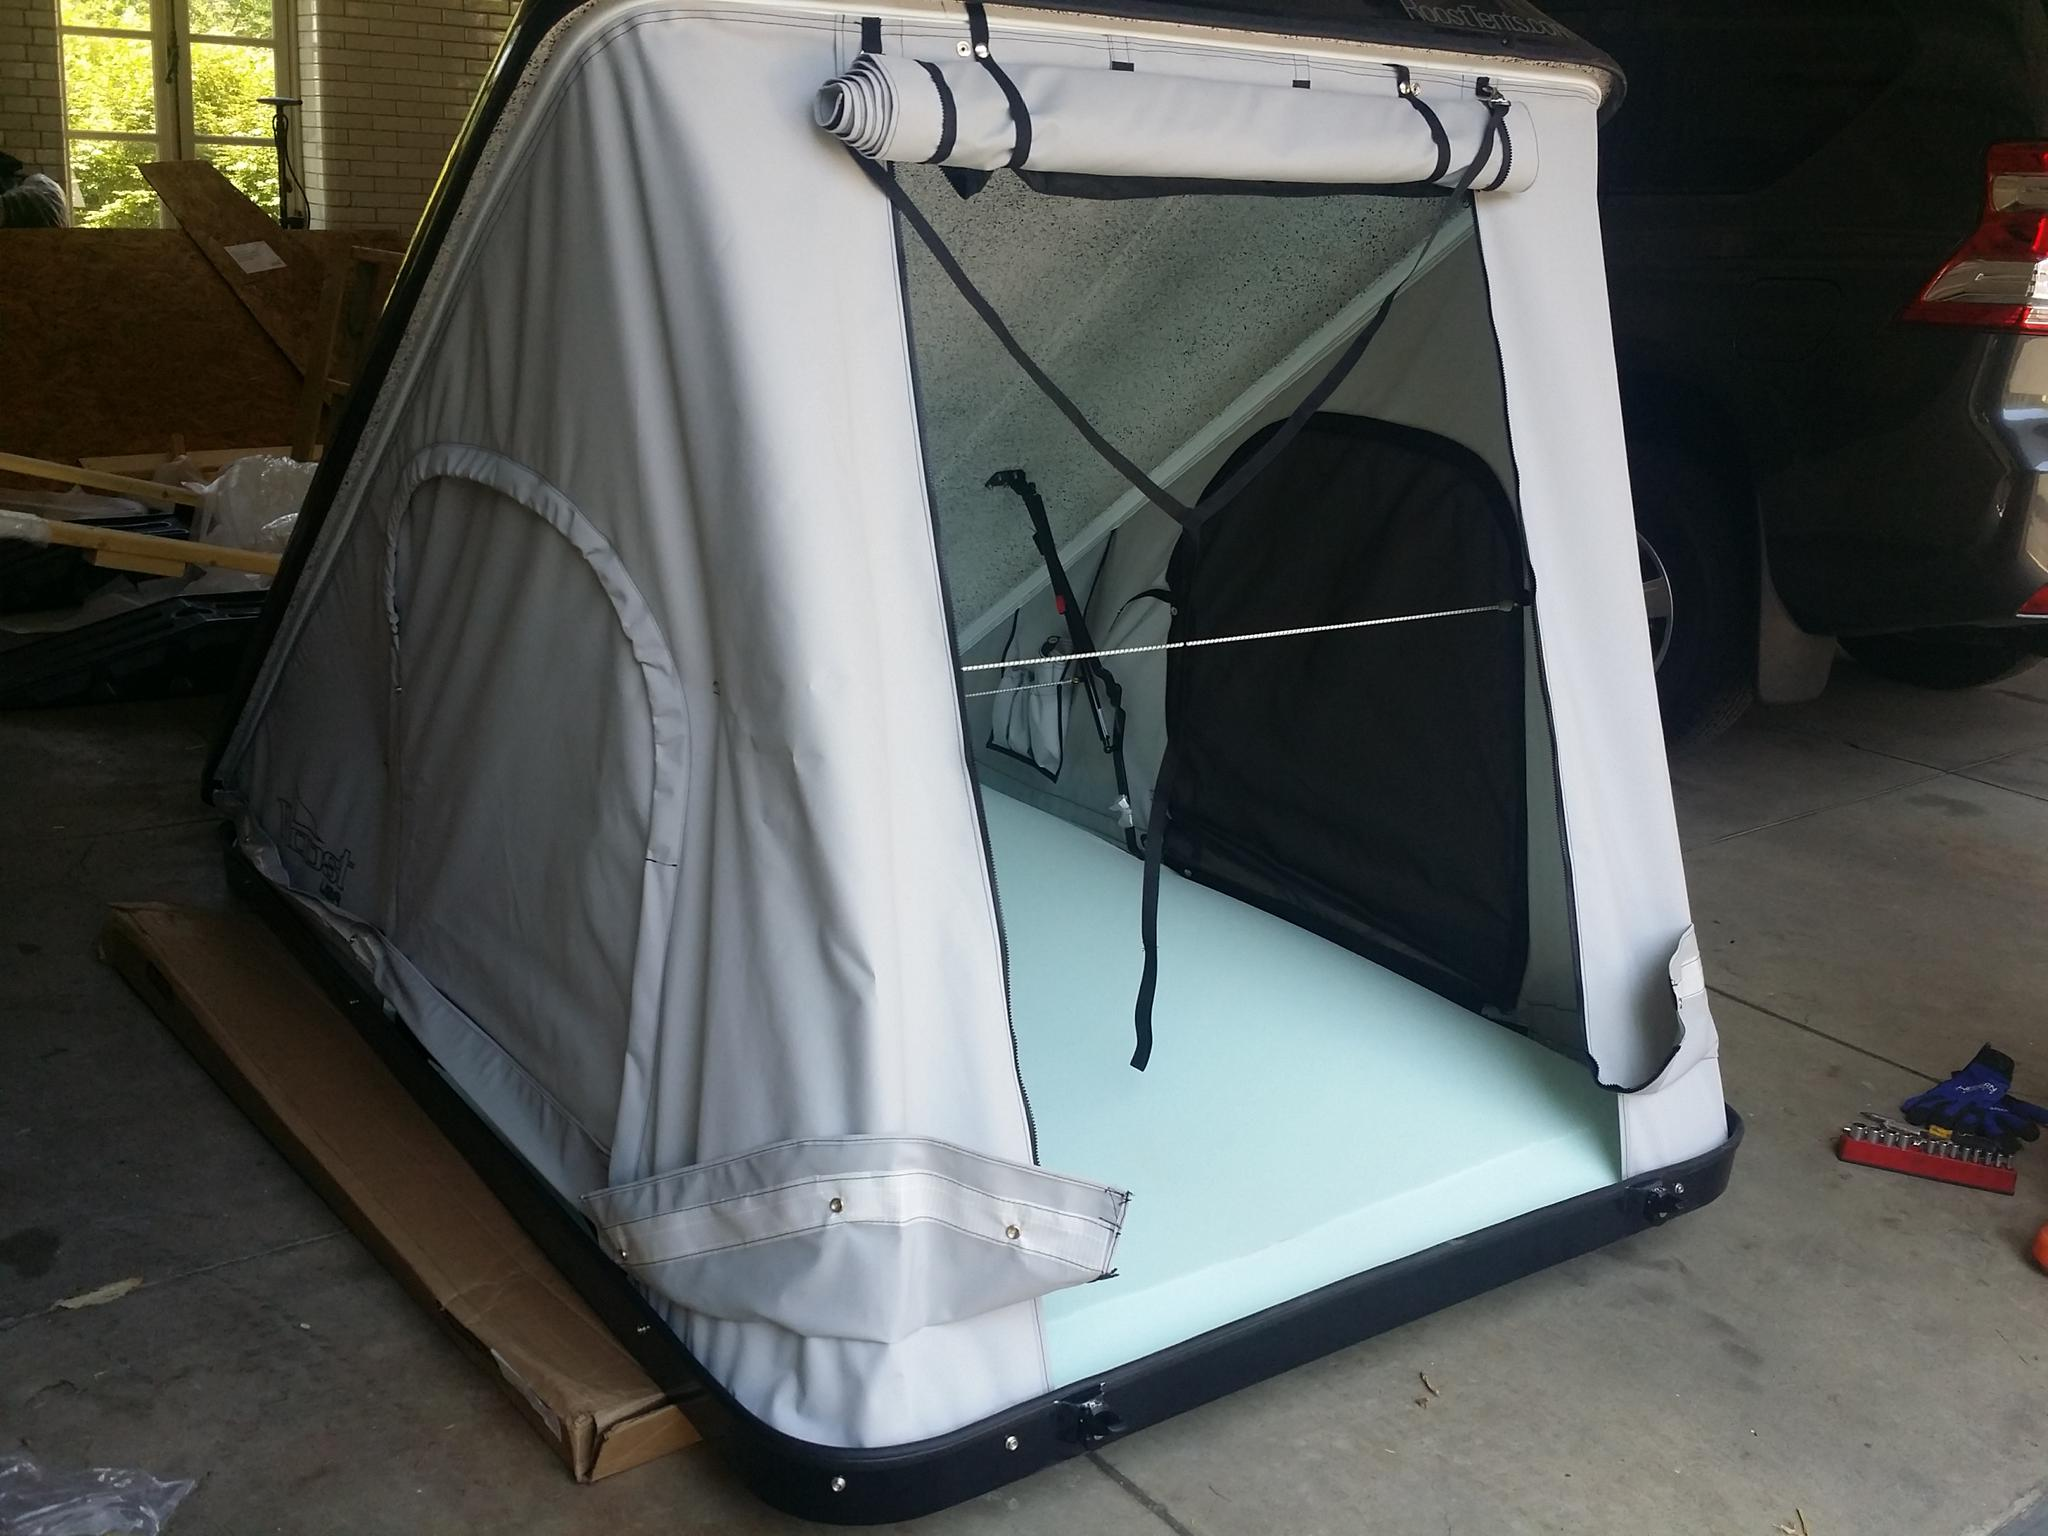 ... Click image for larger version Name 20150515_151224[1].jpg Views 159 ... & Roost Tent Almost Br - Toyota FJ Cruiser Forum